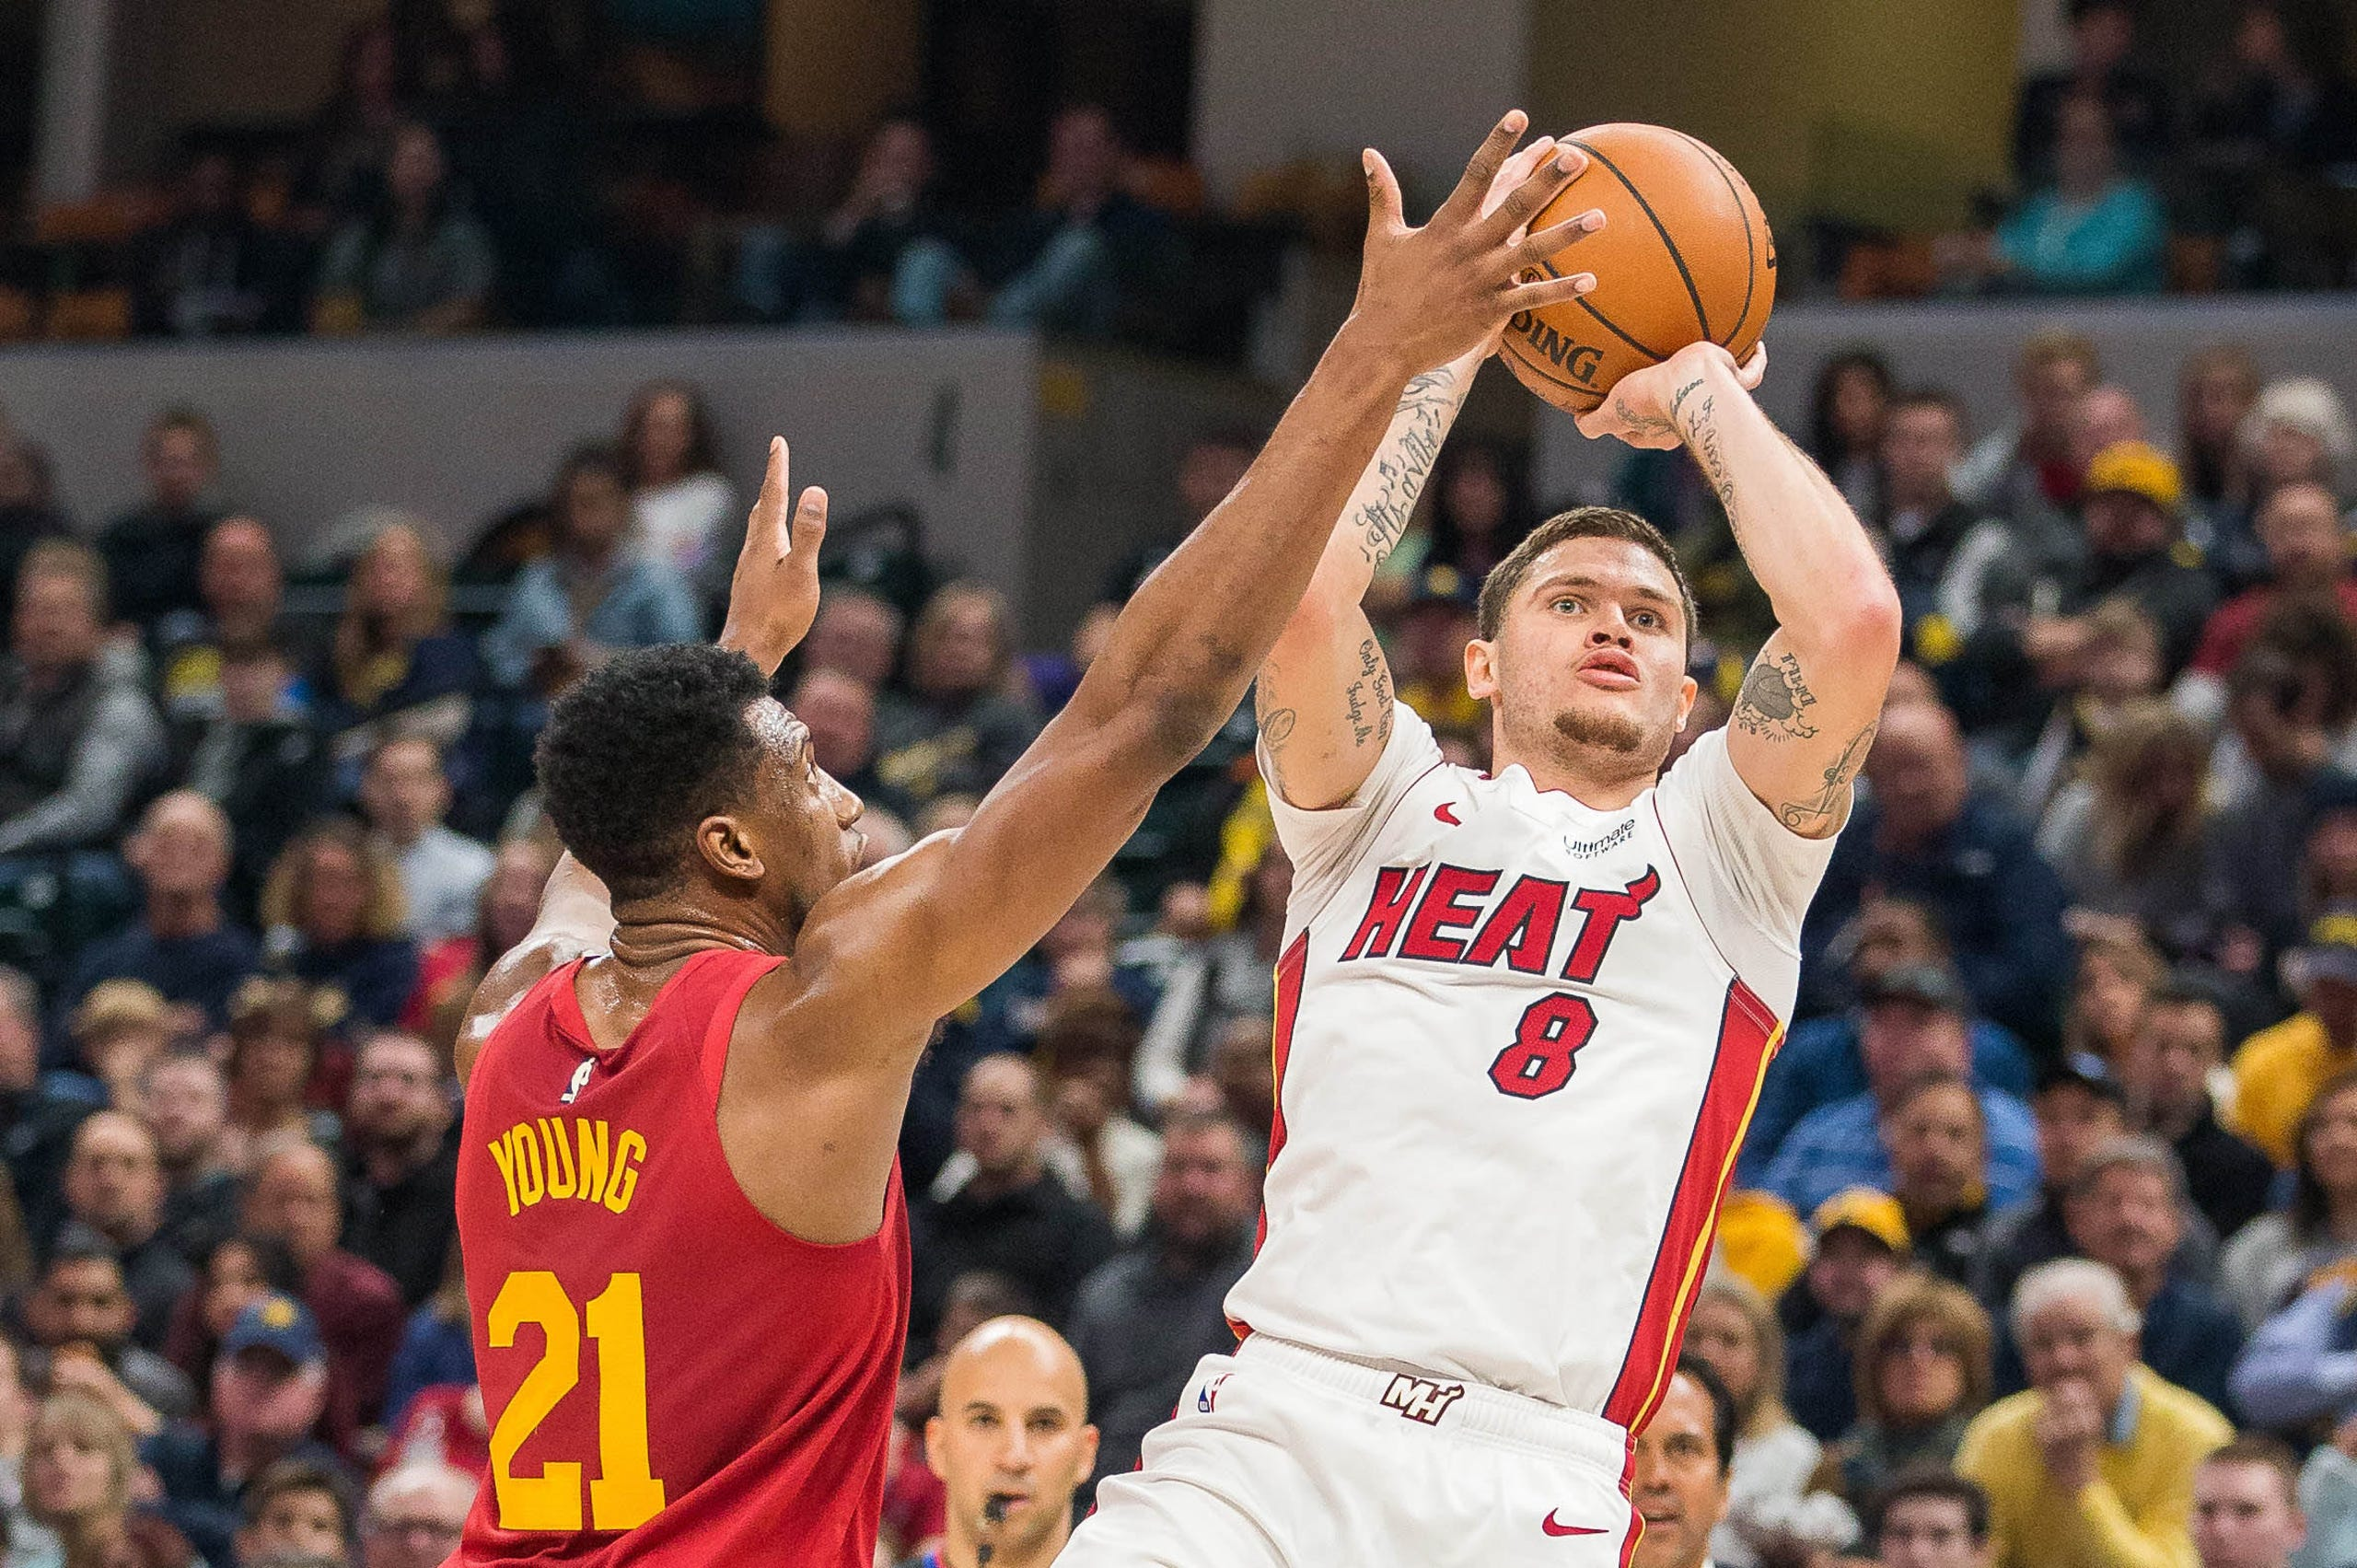 ec6020f35cc Miami Heat guard Tyler Johnson (8) shoots the ball while Indiana Pacers  forward Thaddeus